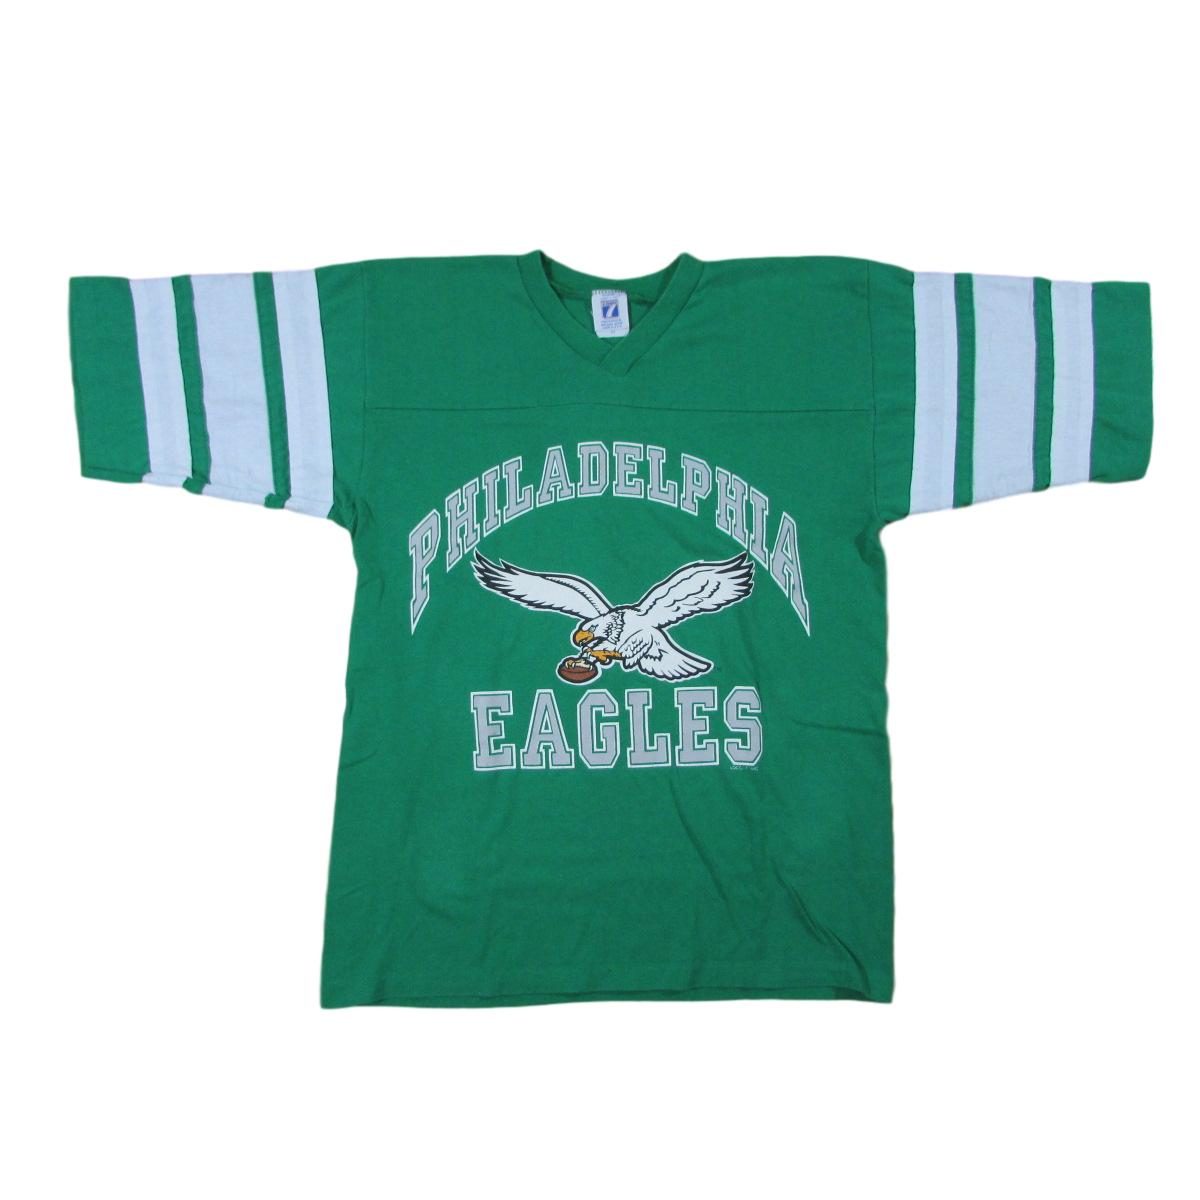 Philadelphia Eagles Football Raglan T-Shirt Logo 7 Sz M